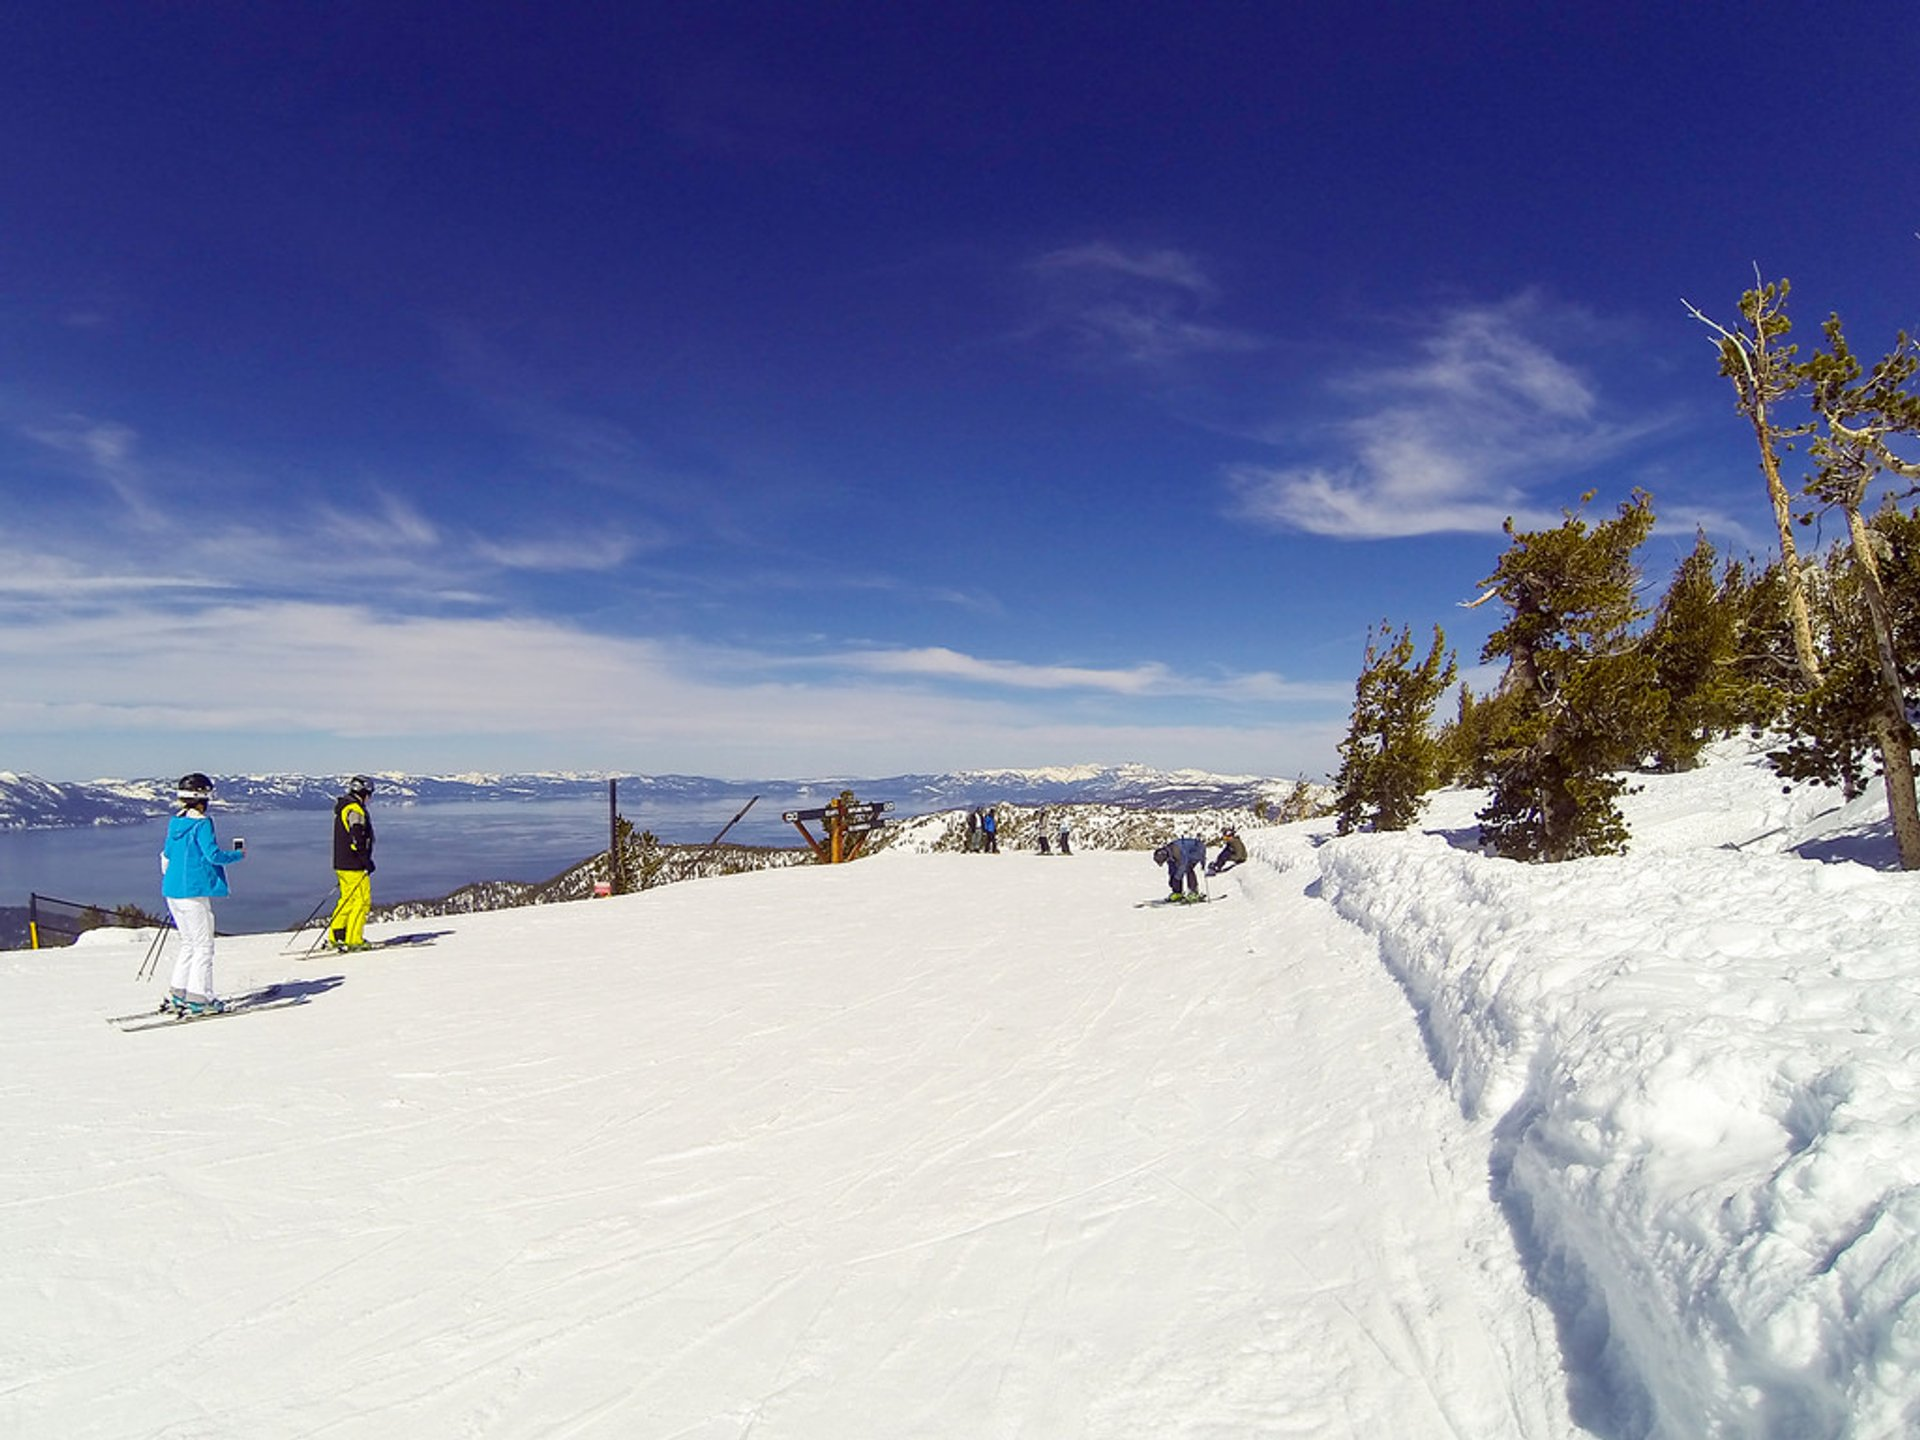 Skiing at Lake Tahoe in California 2020 - Best Time